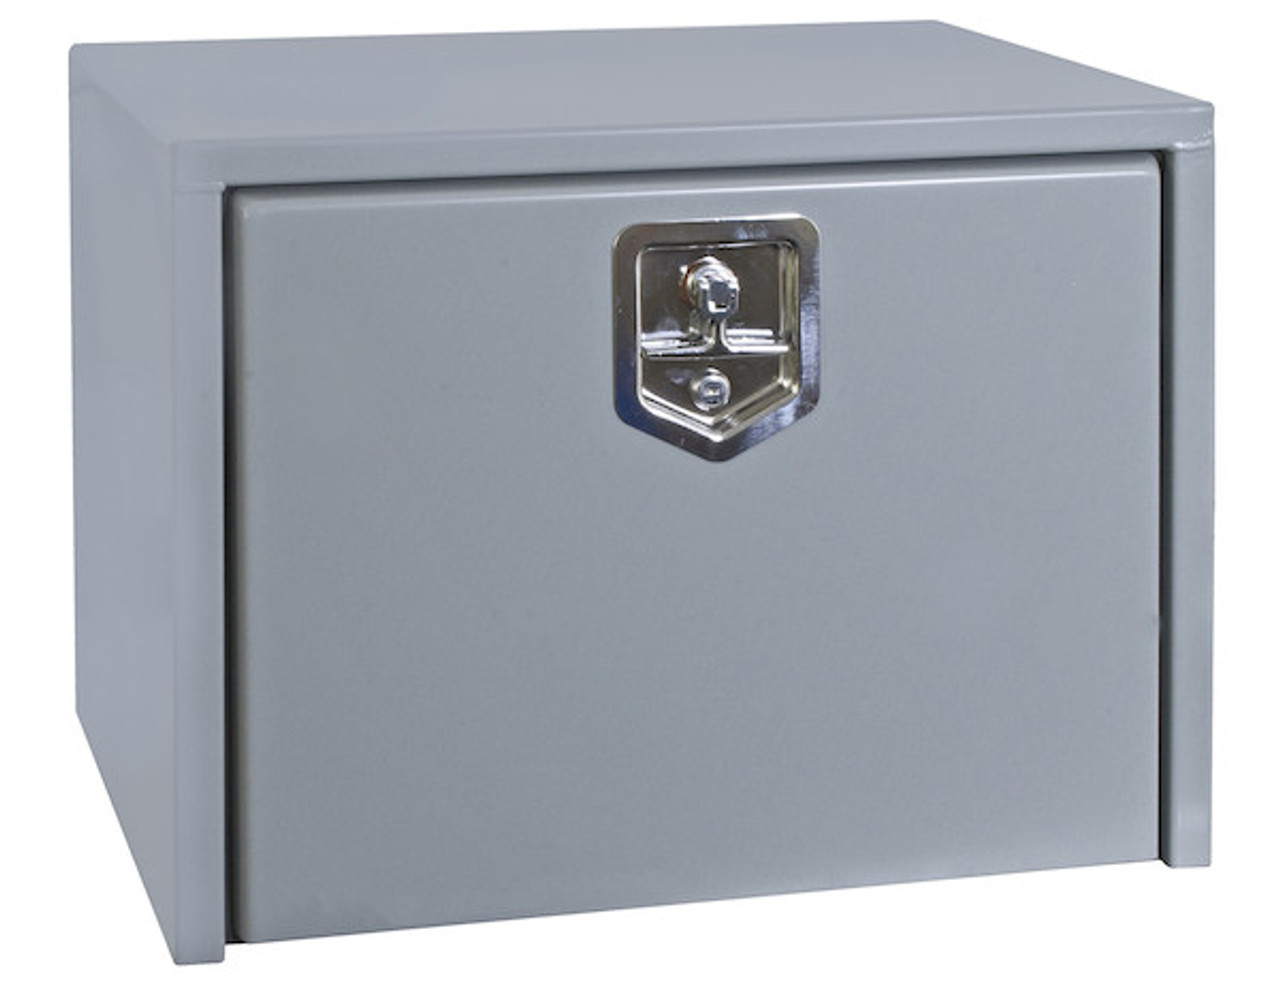 1702900 BUYERS PRODUCTS PRIMED STEEL UNDERBODY TRUCK BOX TOOLBOX